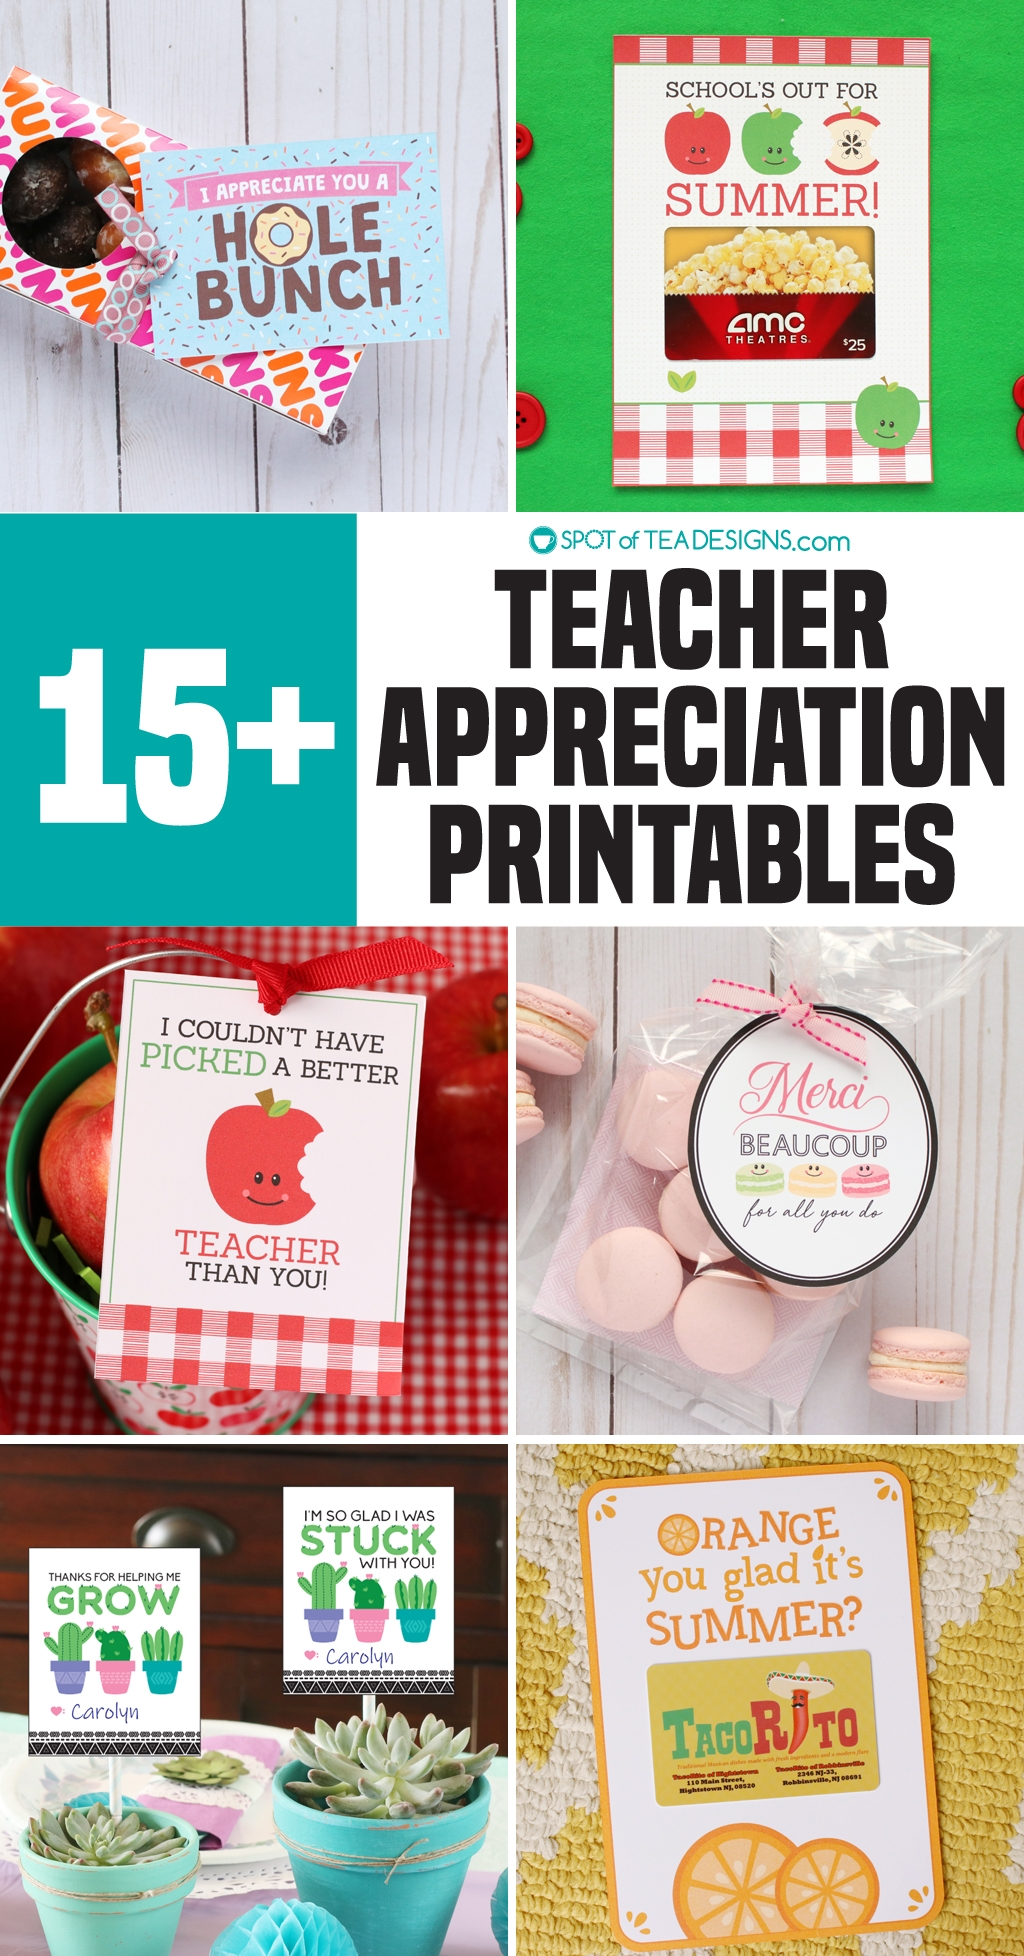 15+ Teacher appreciation printables - great for teacher's appreciation week, Christmas break or the end of the school year! | spotofteadesigns.com